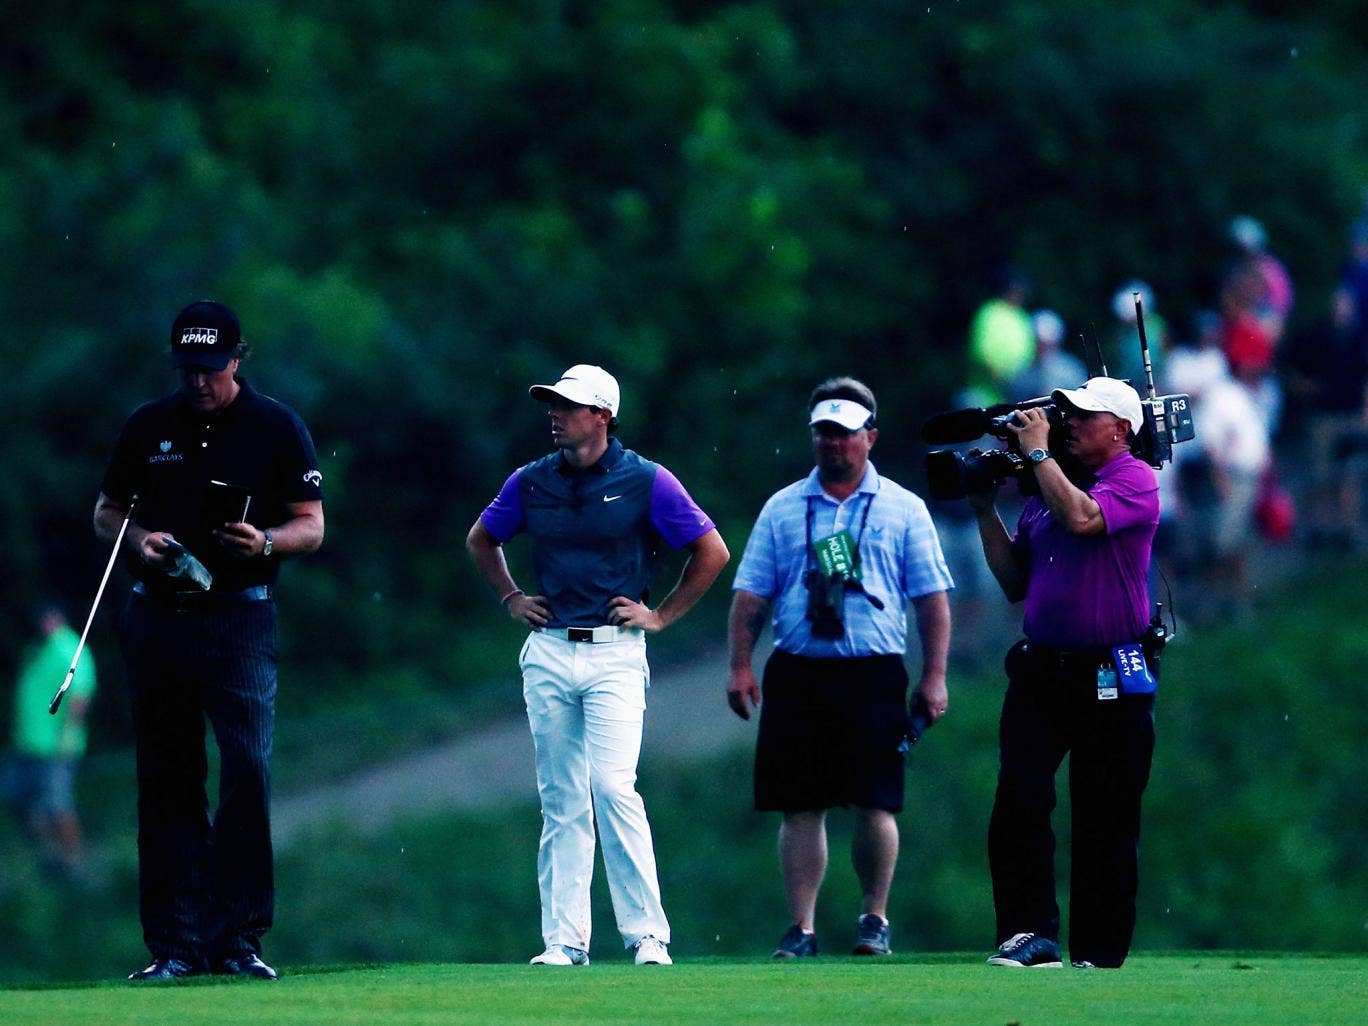 Phil Mickelson and Rory McIlroy stand together during the final round of the US PGA Championship